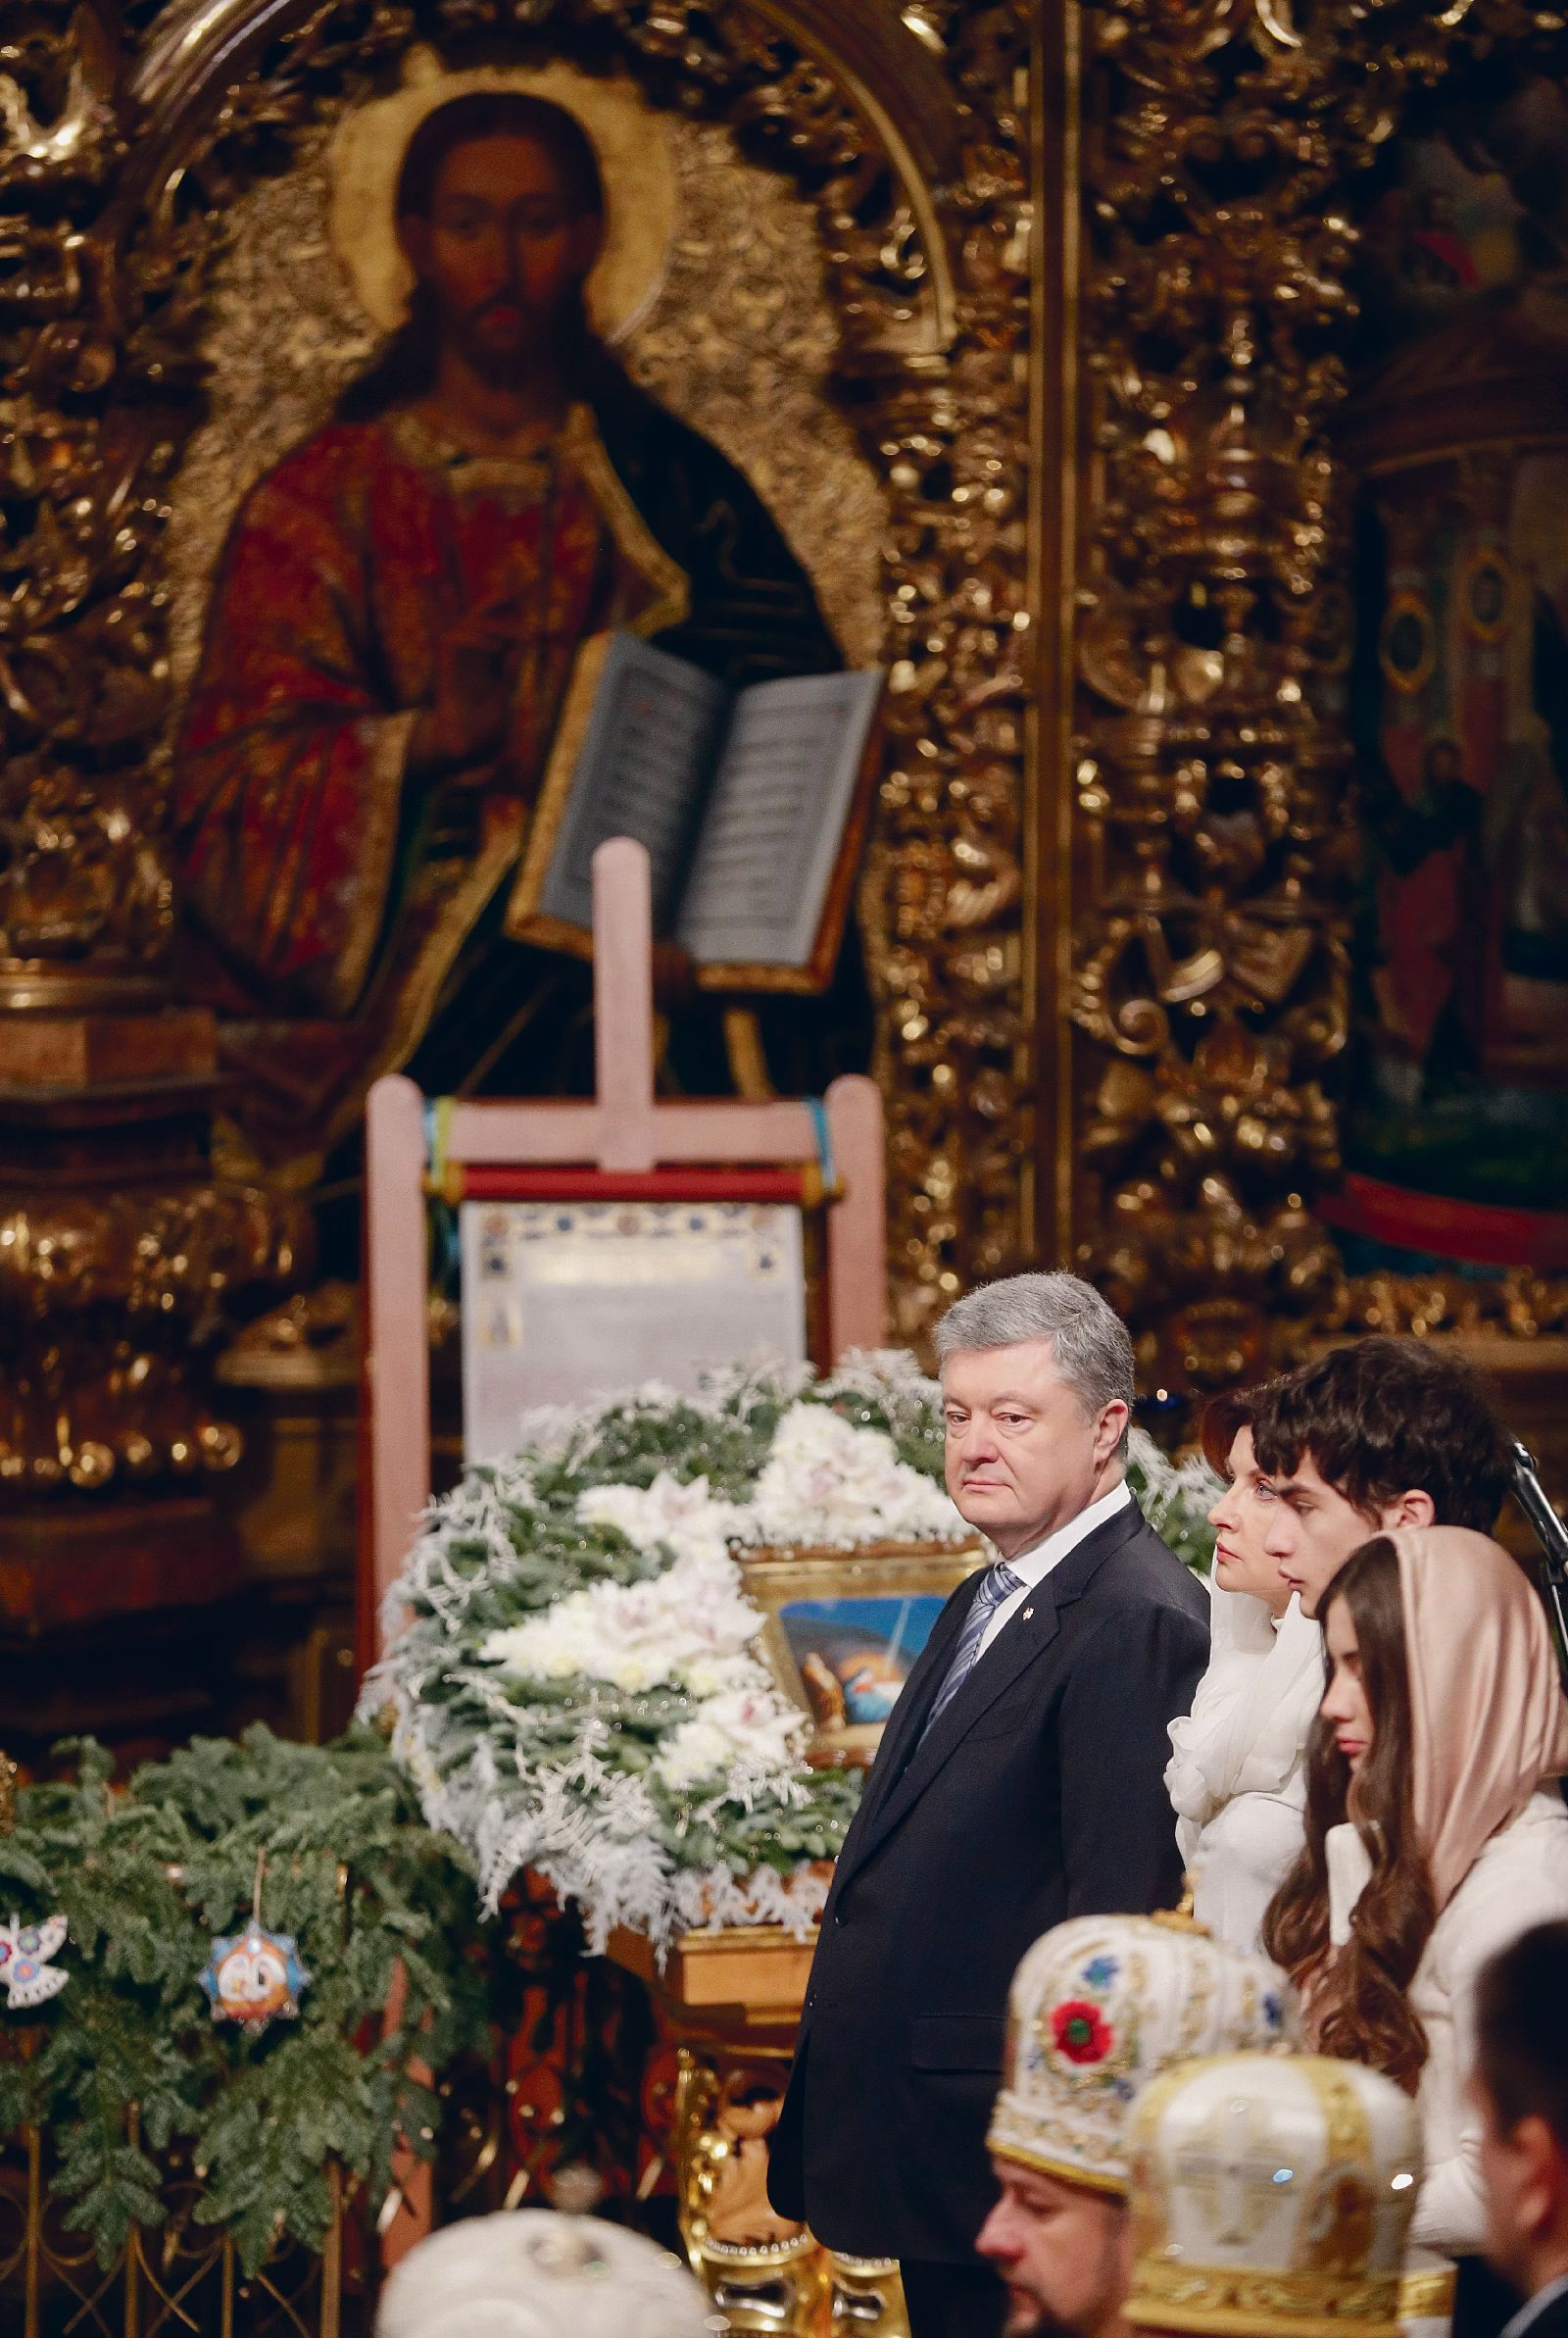 The Autocephaly of the Ukrainian Orthodox Church and the Future of